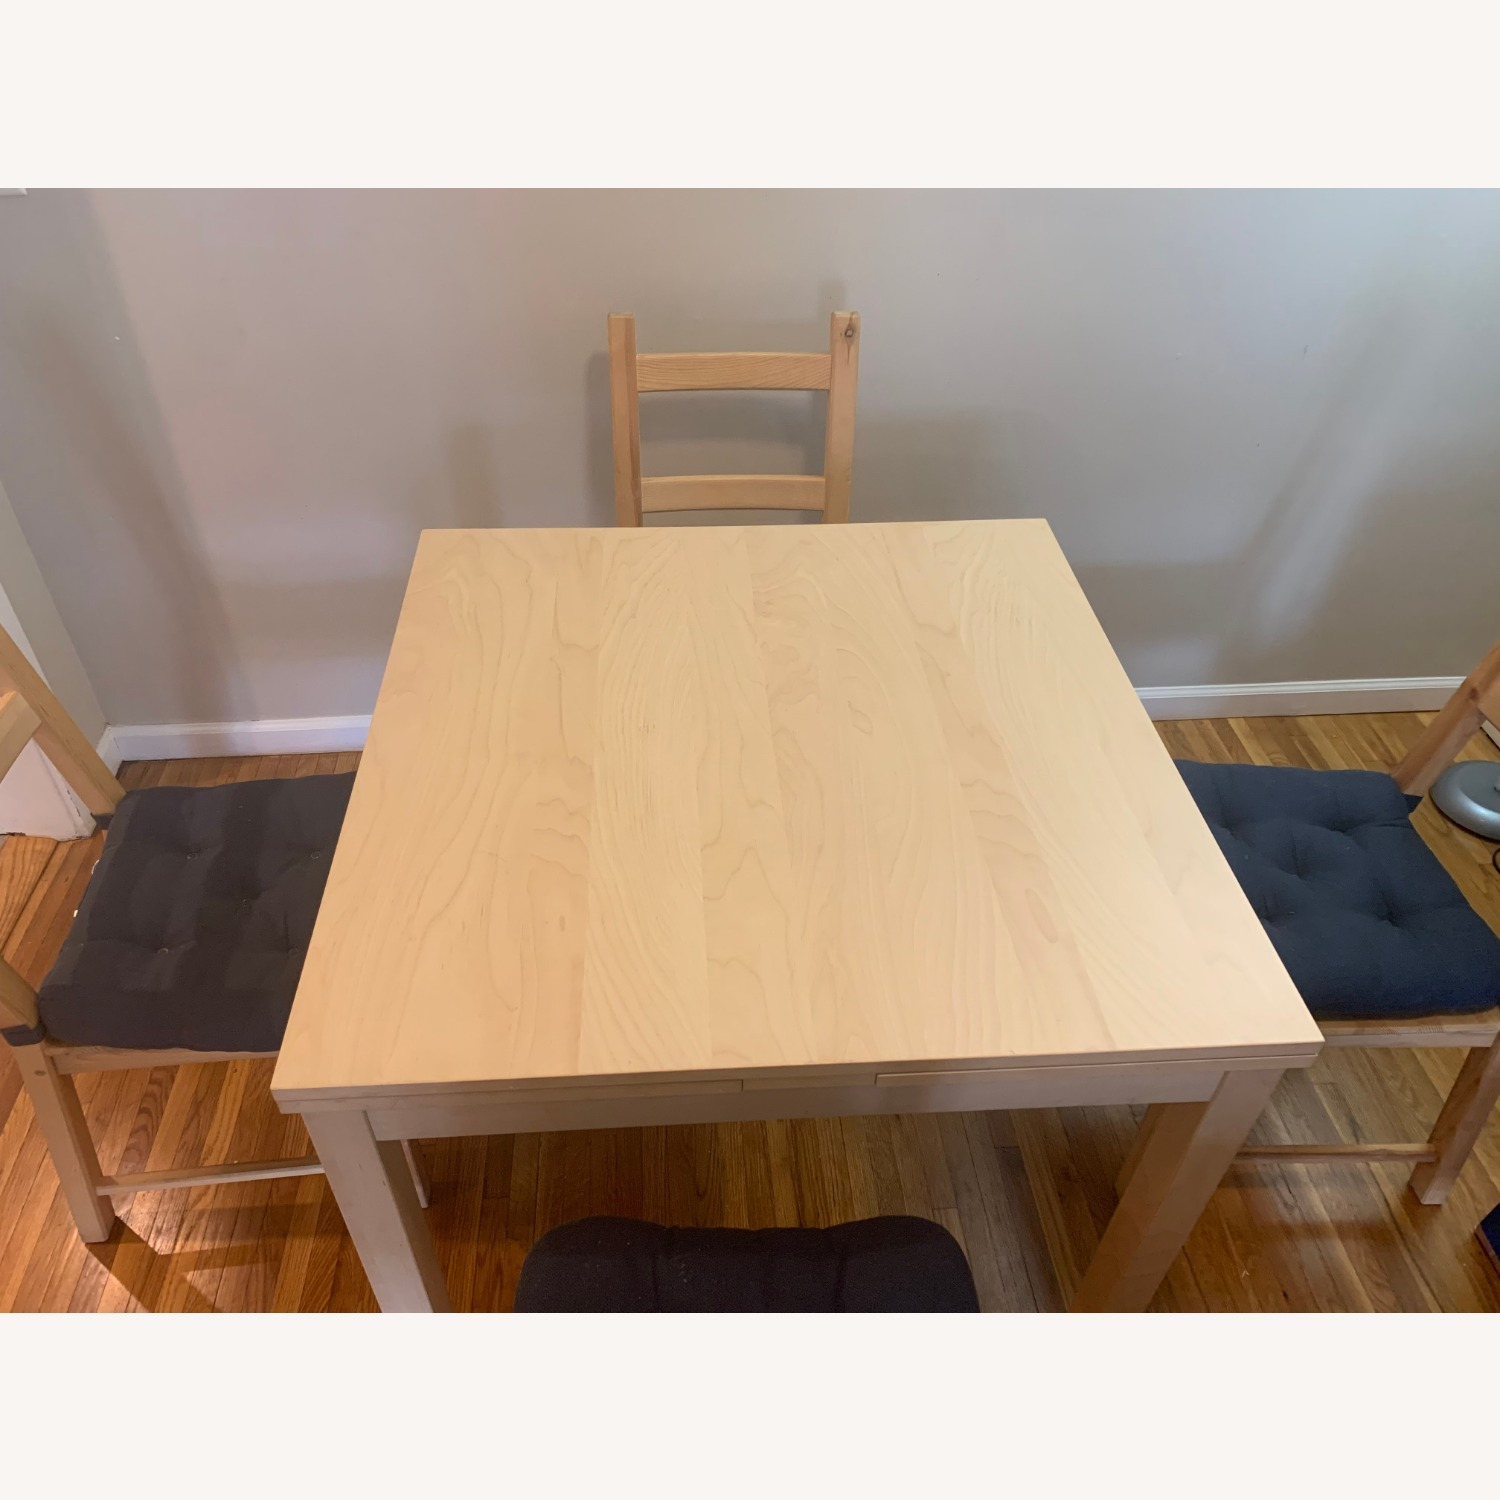 IKEA Extendible Dining Table and Chairs - image-1